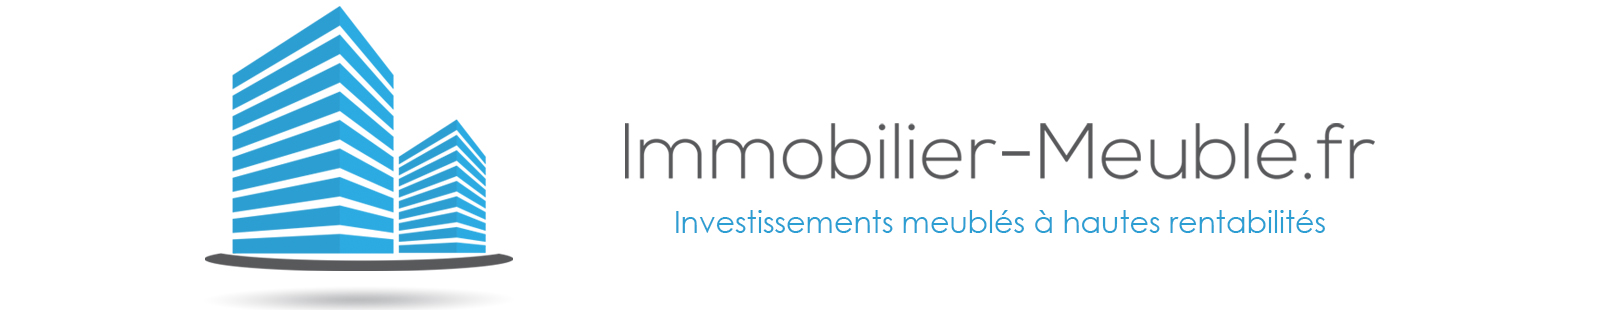 Immobilier-Meublé.fr